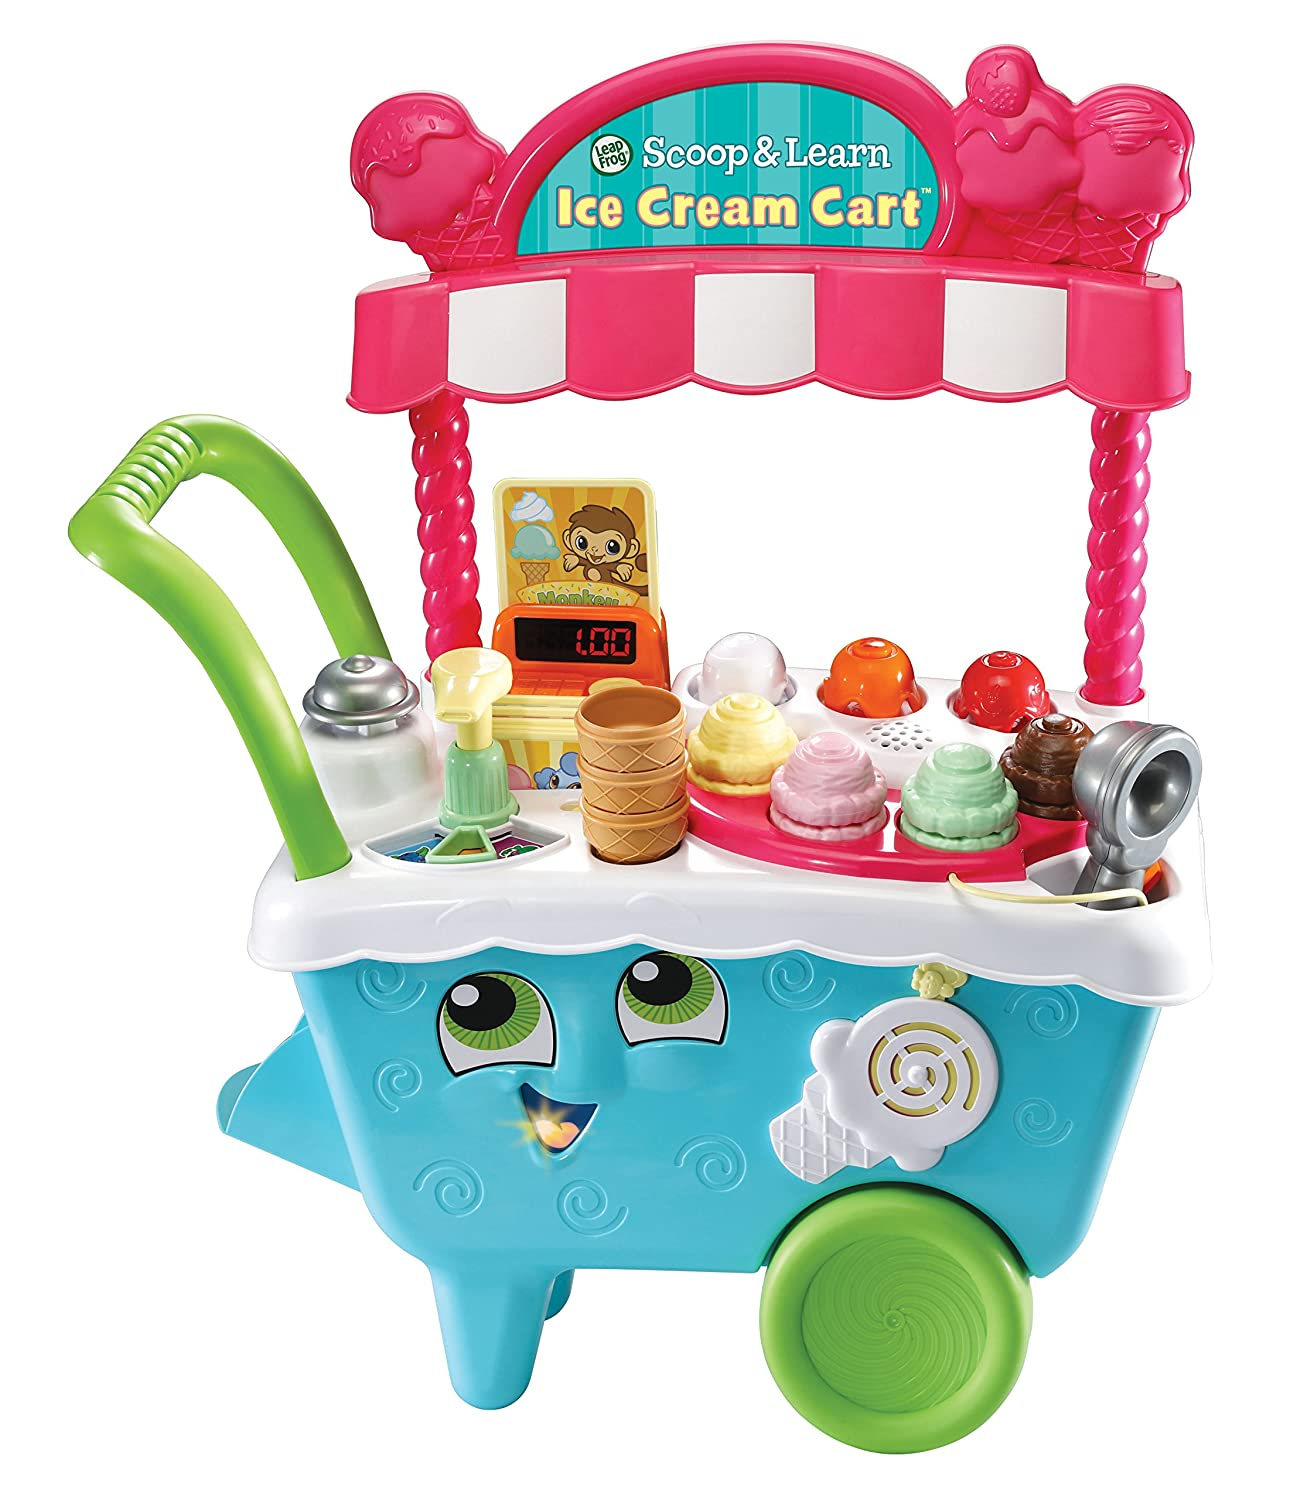 LeapFrog Scoop toy - Learn Ice Cream Cart toy